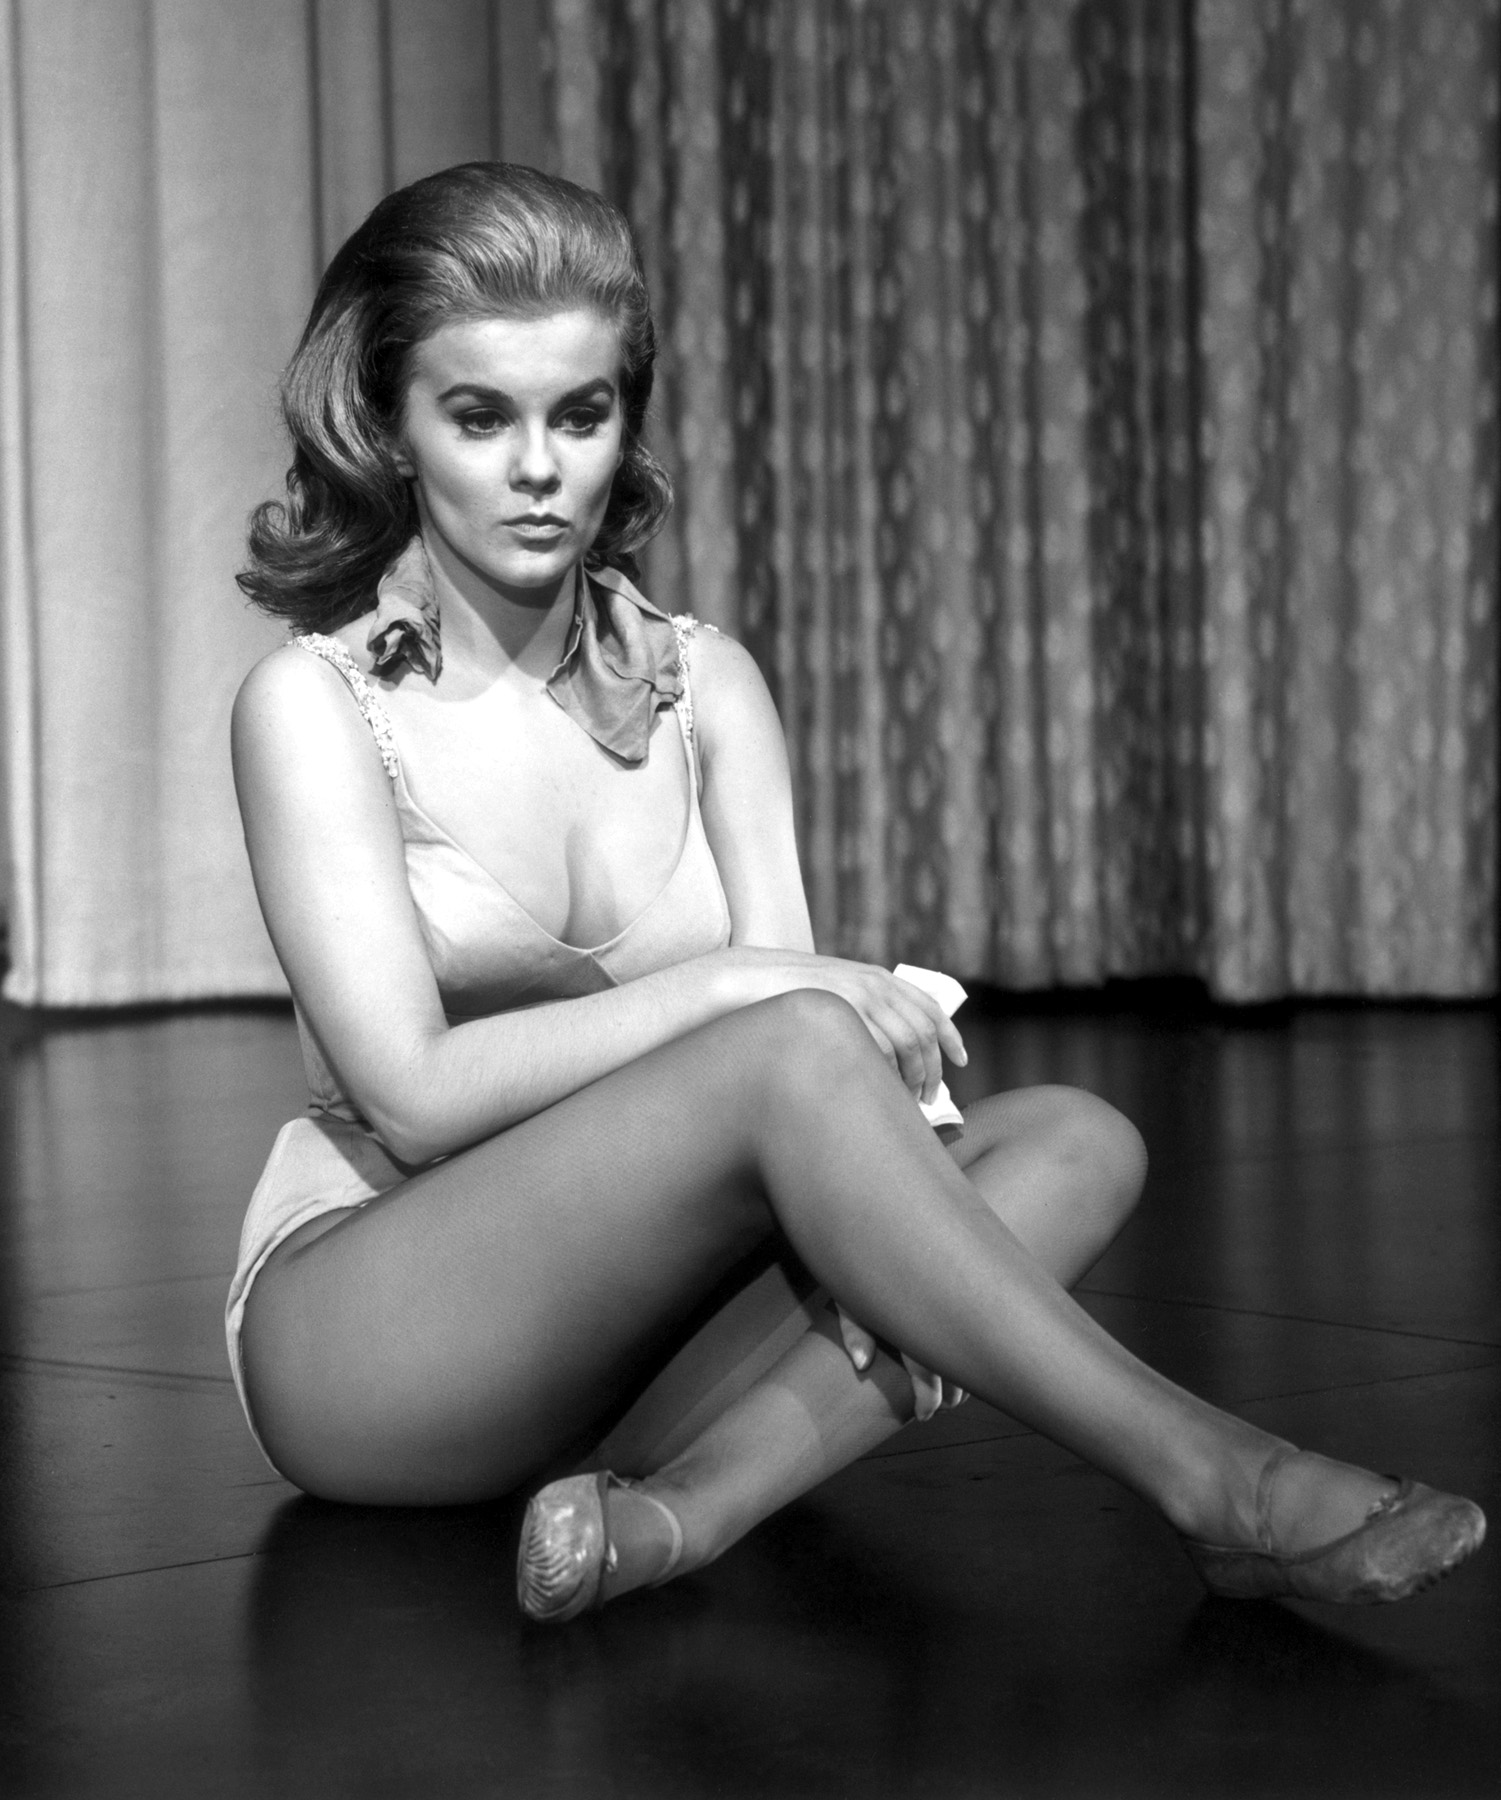 Ann-margret - Wallpaper Actress